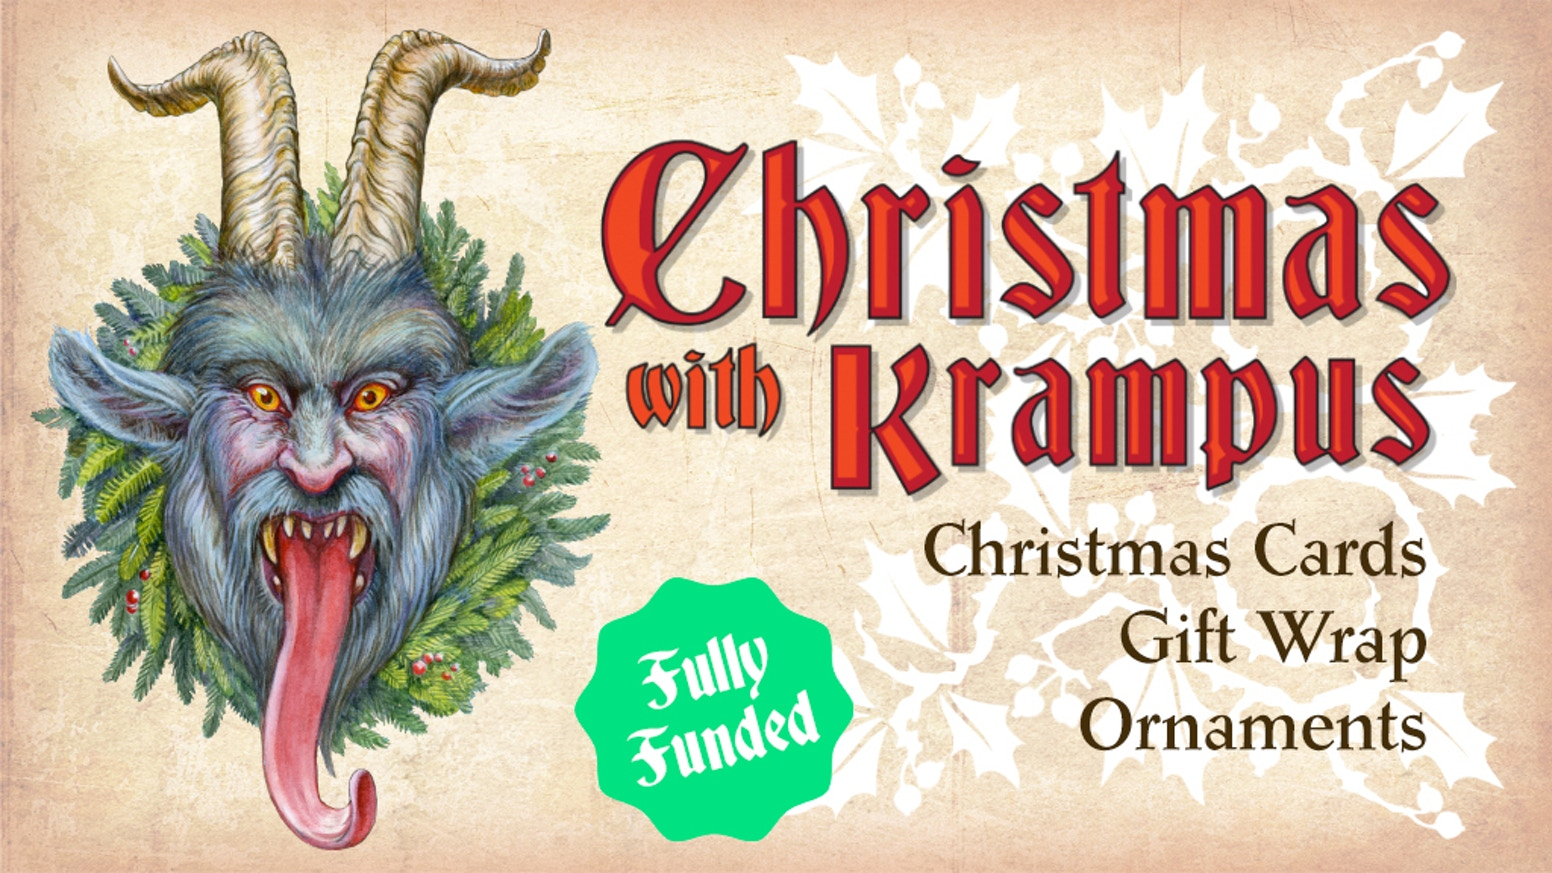 Traditionally illustrated Christmas cards, gift wrap and ornaments featuring Krampus the Christmas demon. Missed the campaign? You can still get the rewards in the Studio Wondercabinet store - follow the link below.